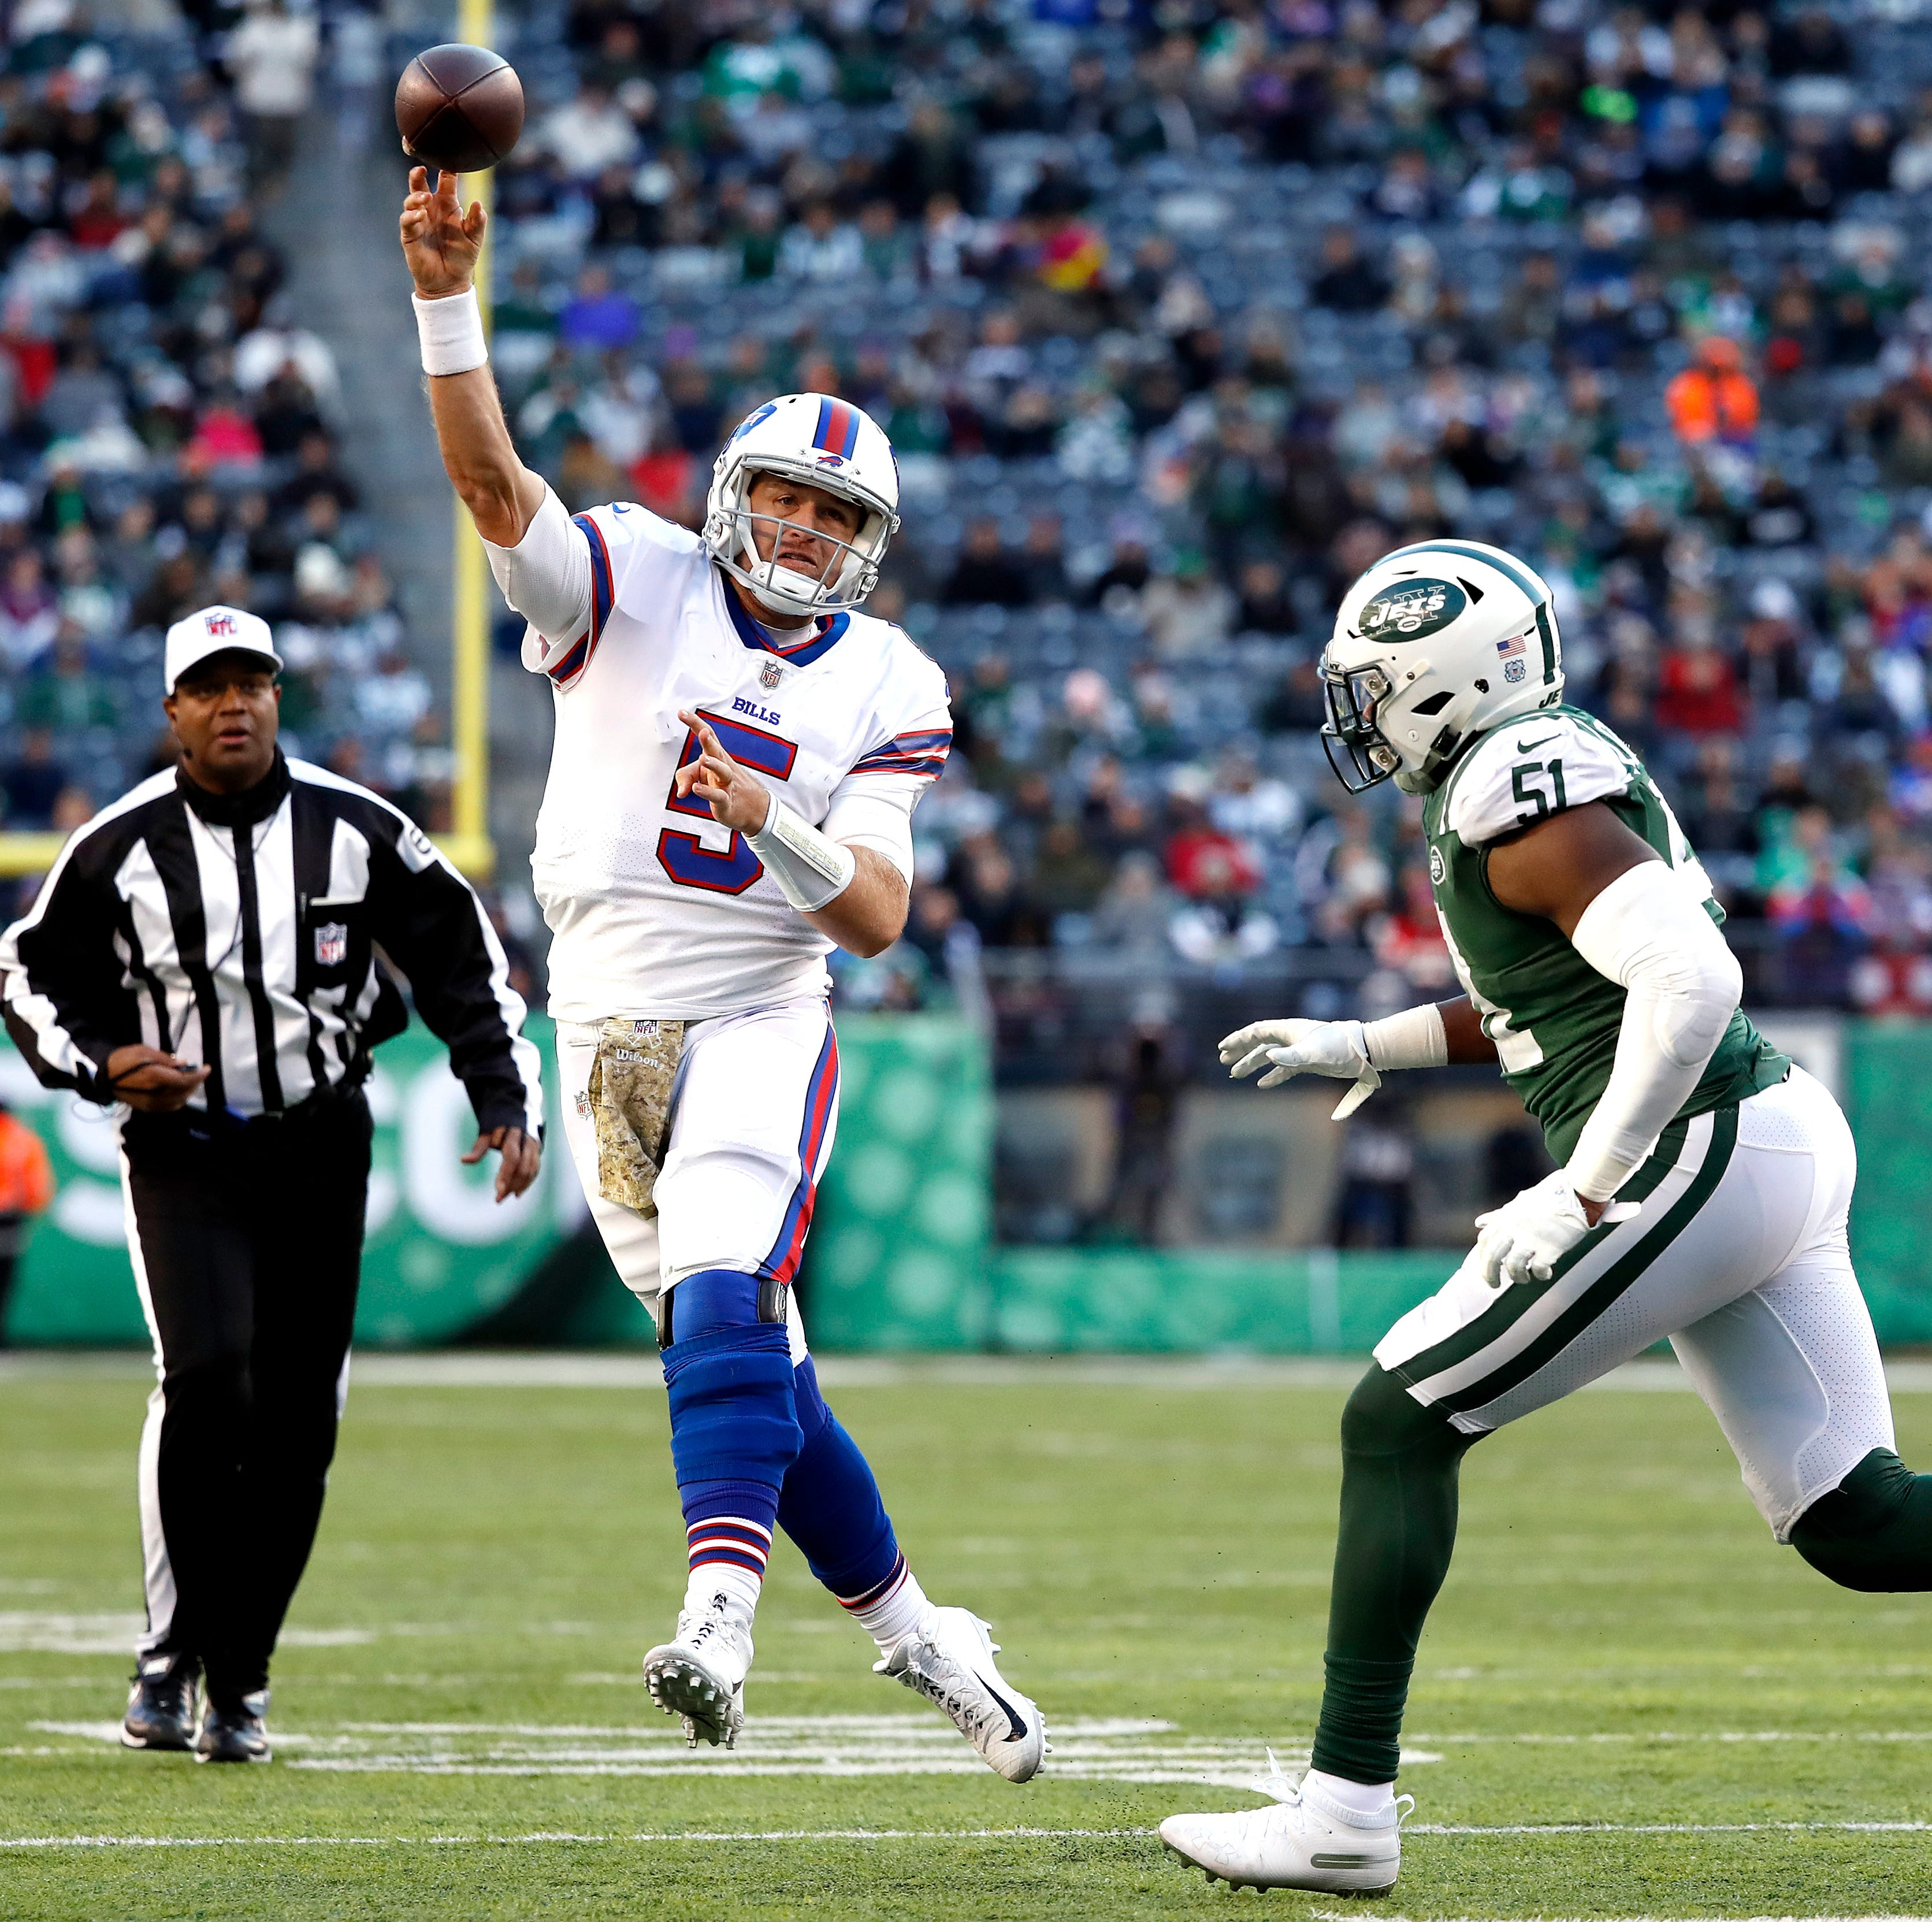 A Bills QB controversy? Let's not carried away but Barkley's play a breath of fresh air